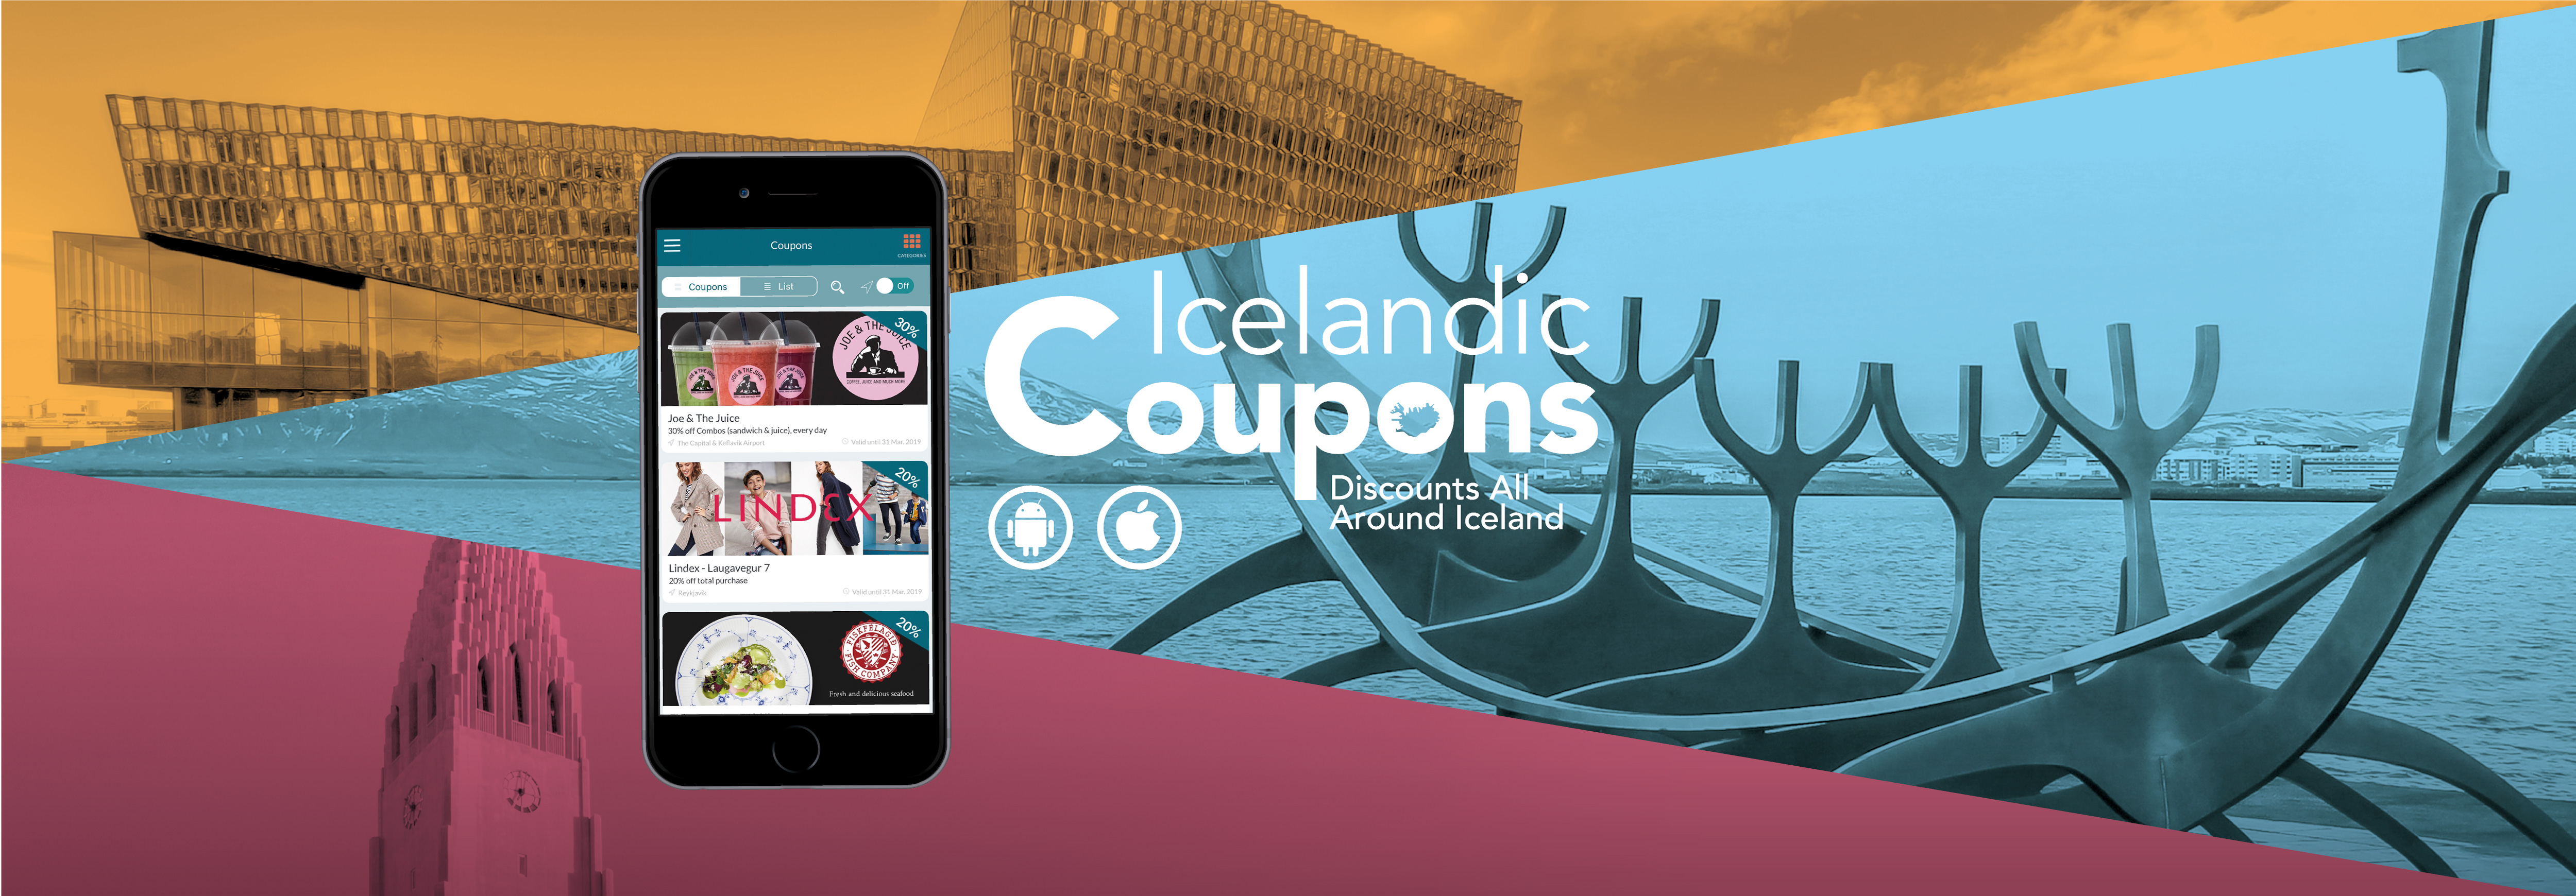 coupons in iceland